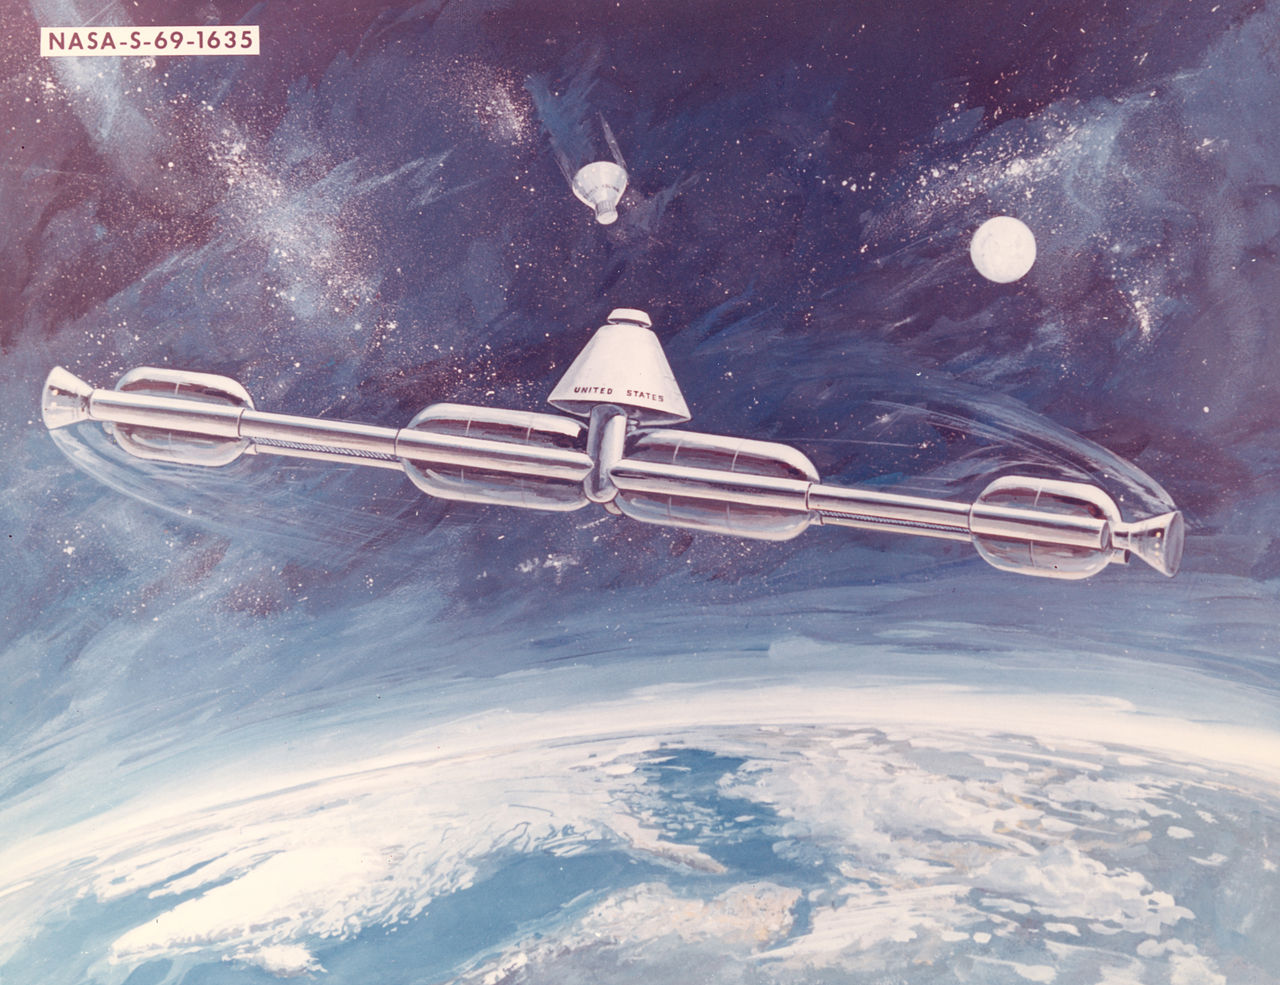 A 1969 station concept. The station was to rotate on its central axis to produce artificial gravity. The majority of early space station concepts created artificial gravity one way or another in order to simulate a more natural or familiar environment for the health of the astronauts. - Image Credit: NASA